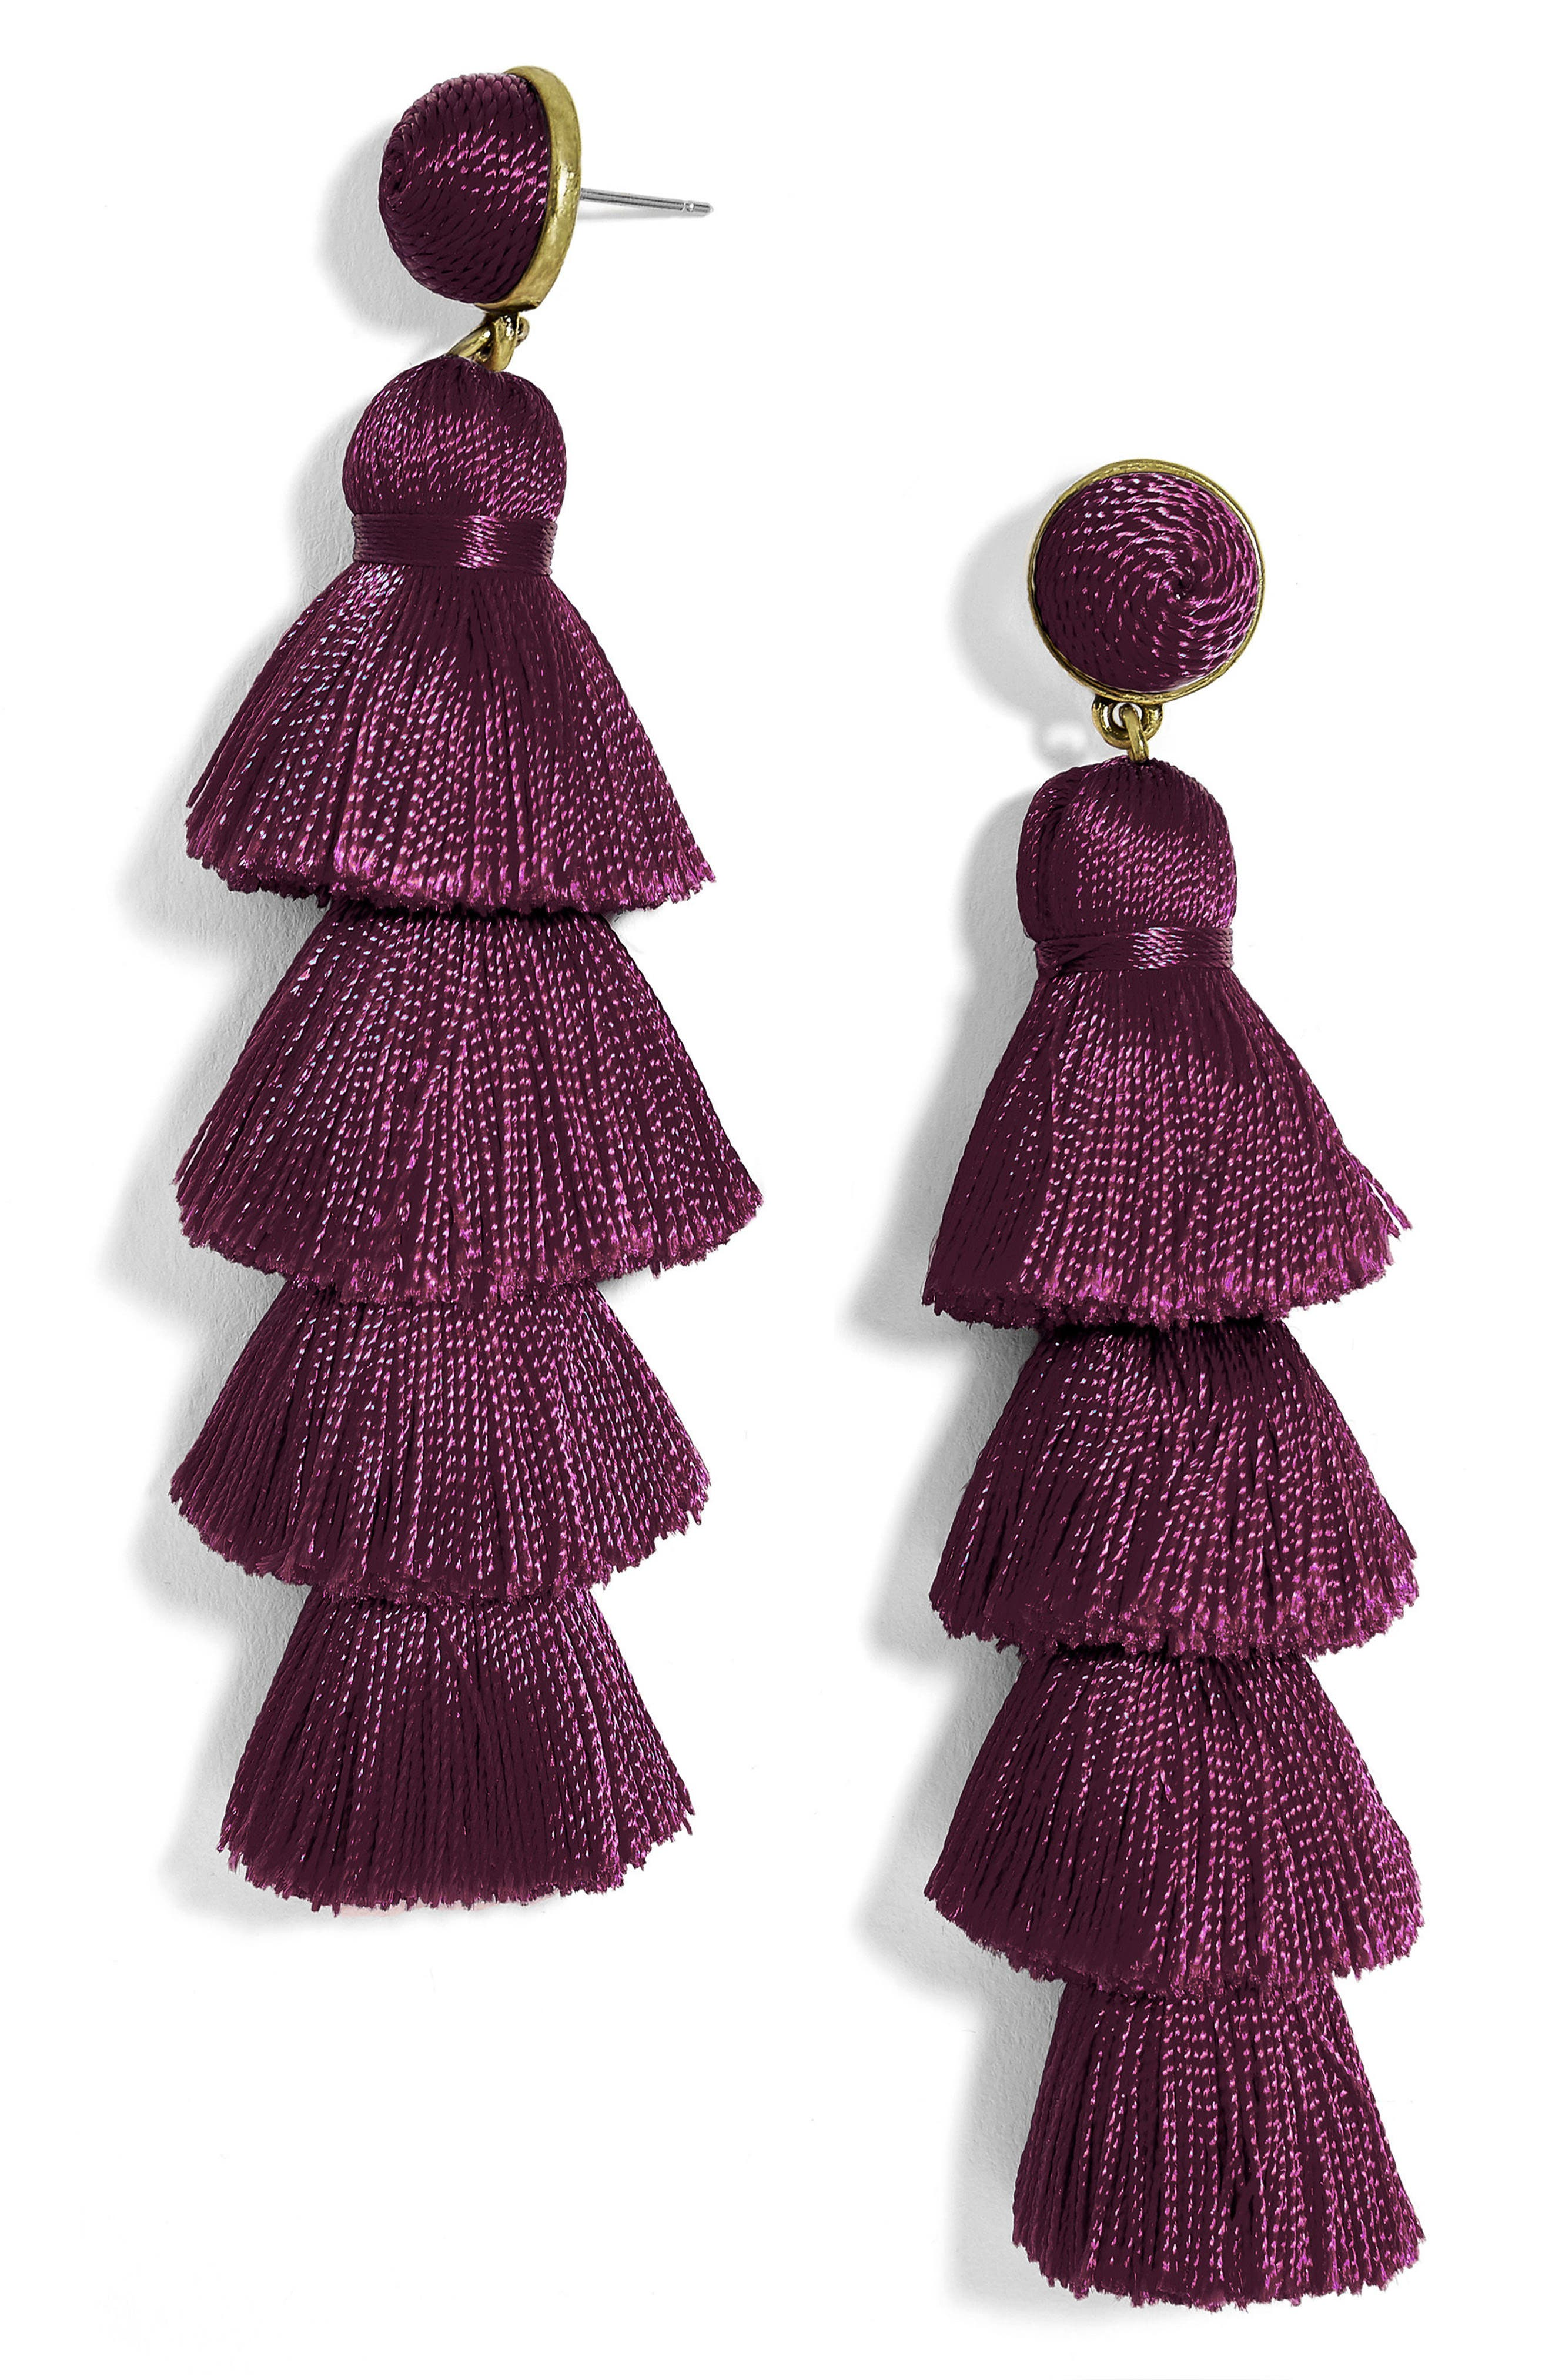 Gabriela Tassel Fringe Earrings,                             Main thumbnail 1, color,                             Eggplant